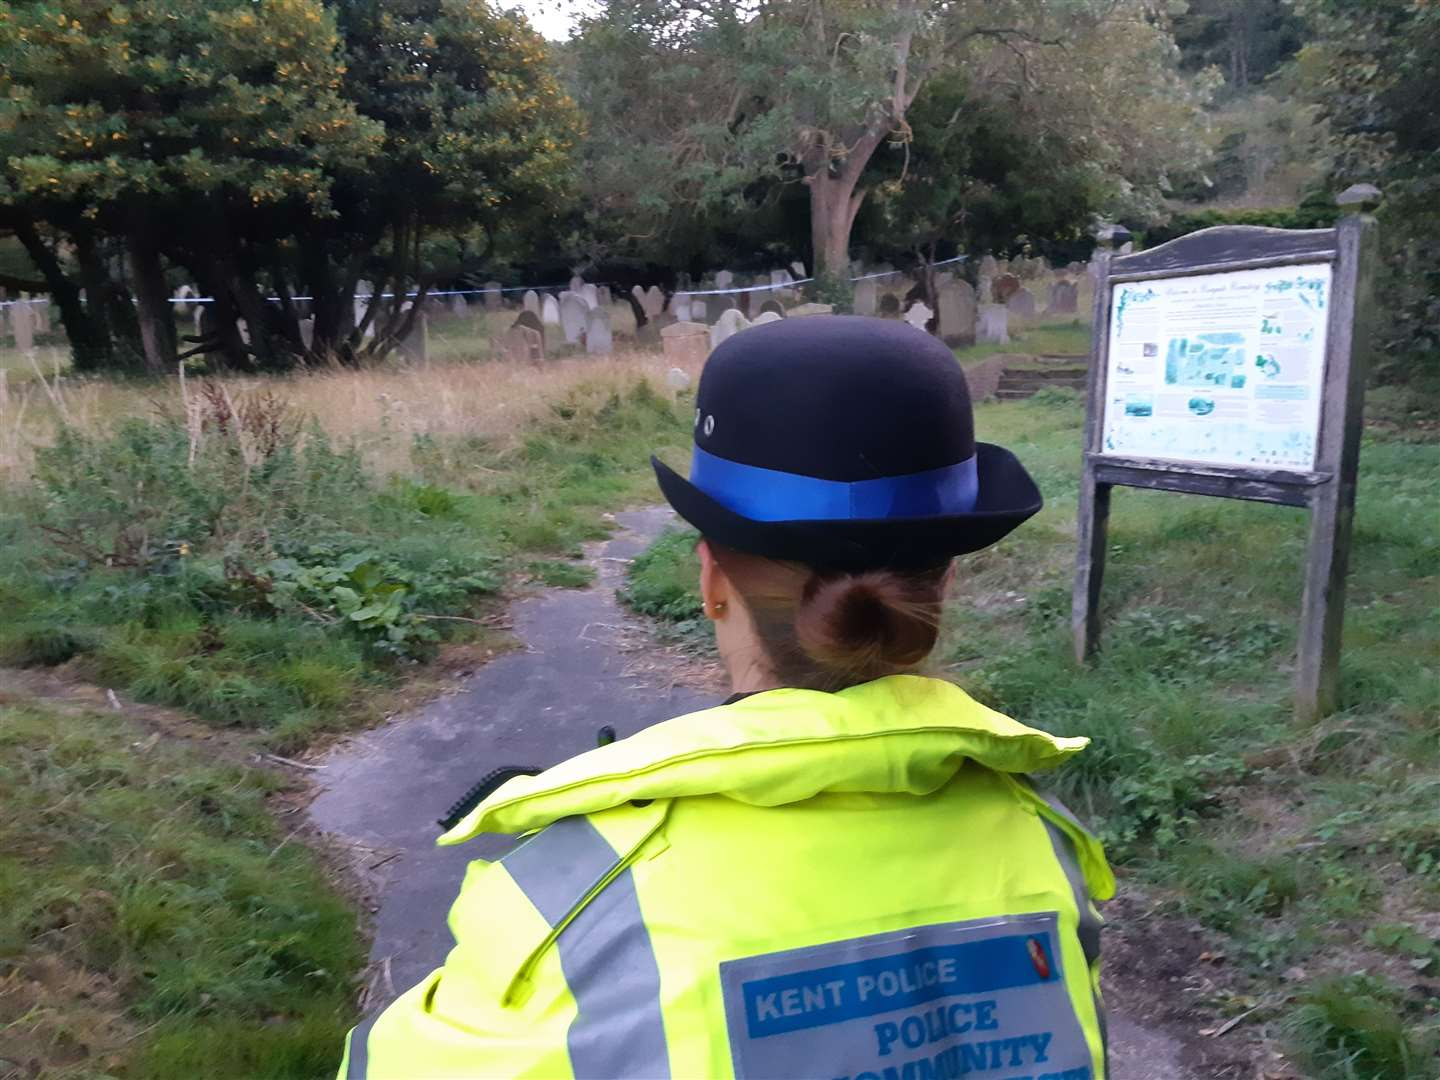 Cowgate Cemetery was closed for days as policed search for clues